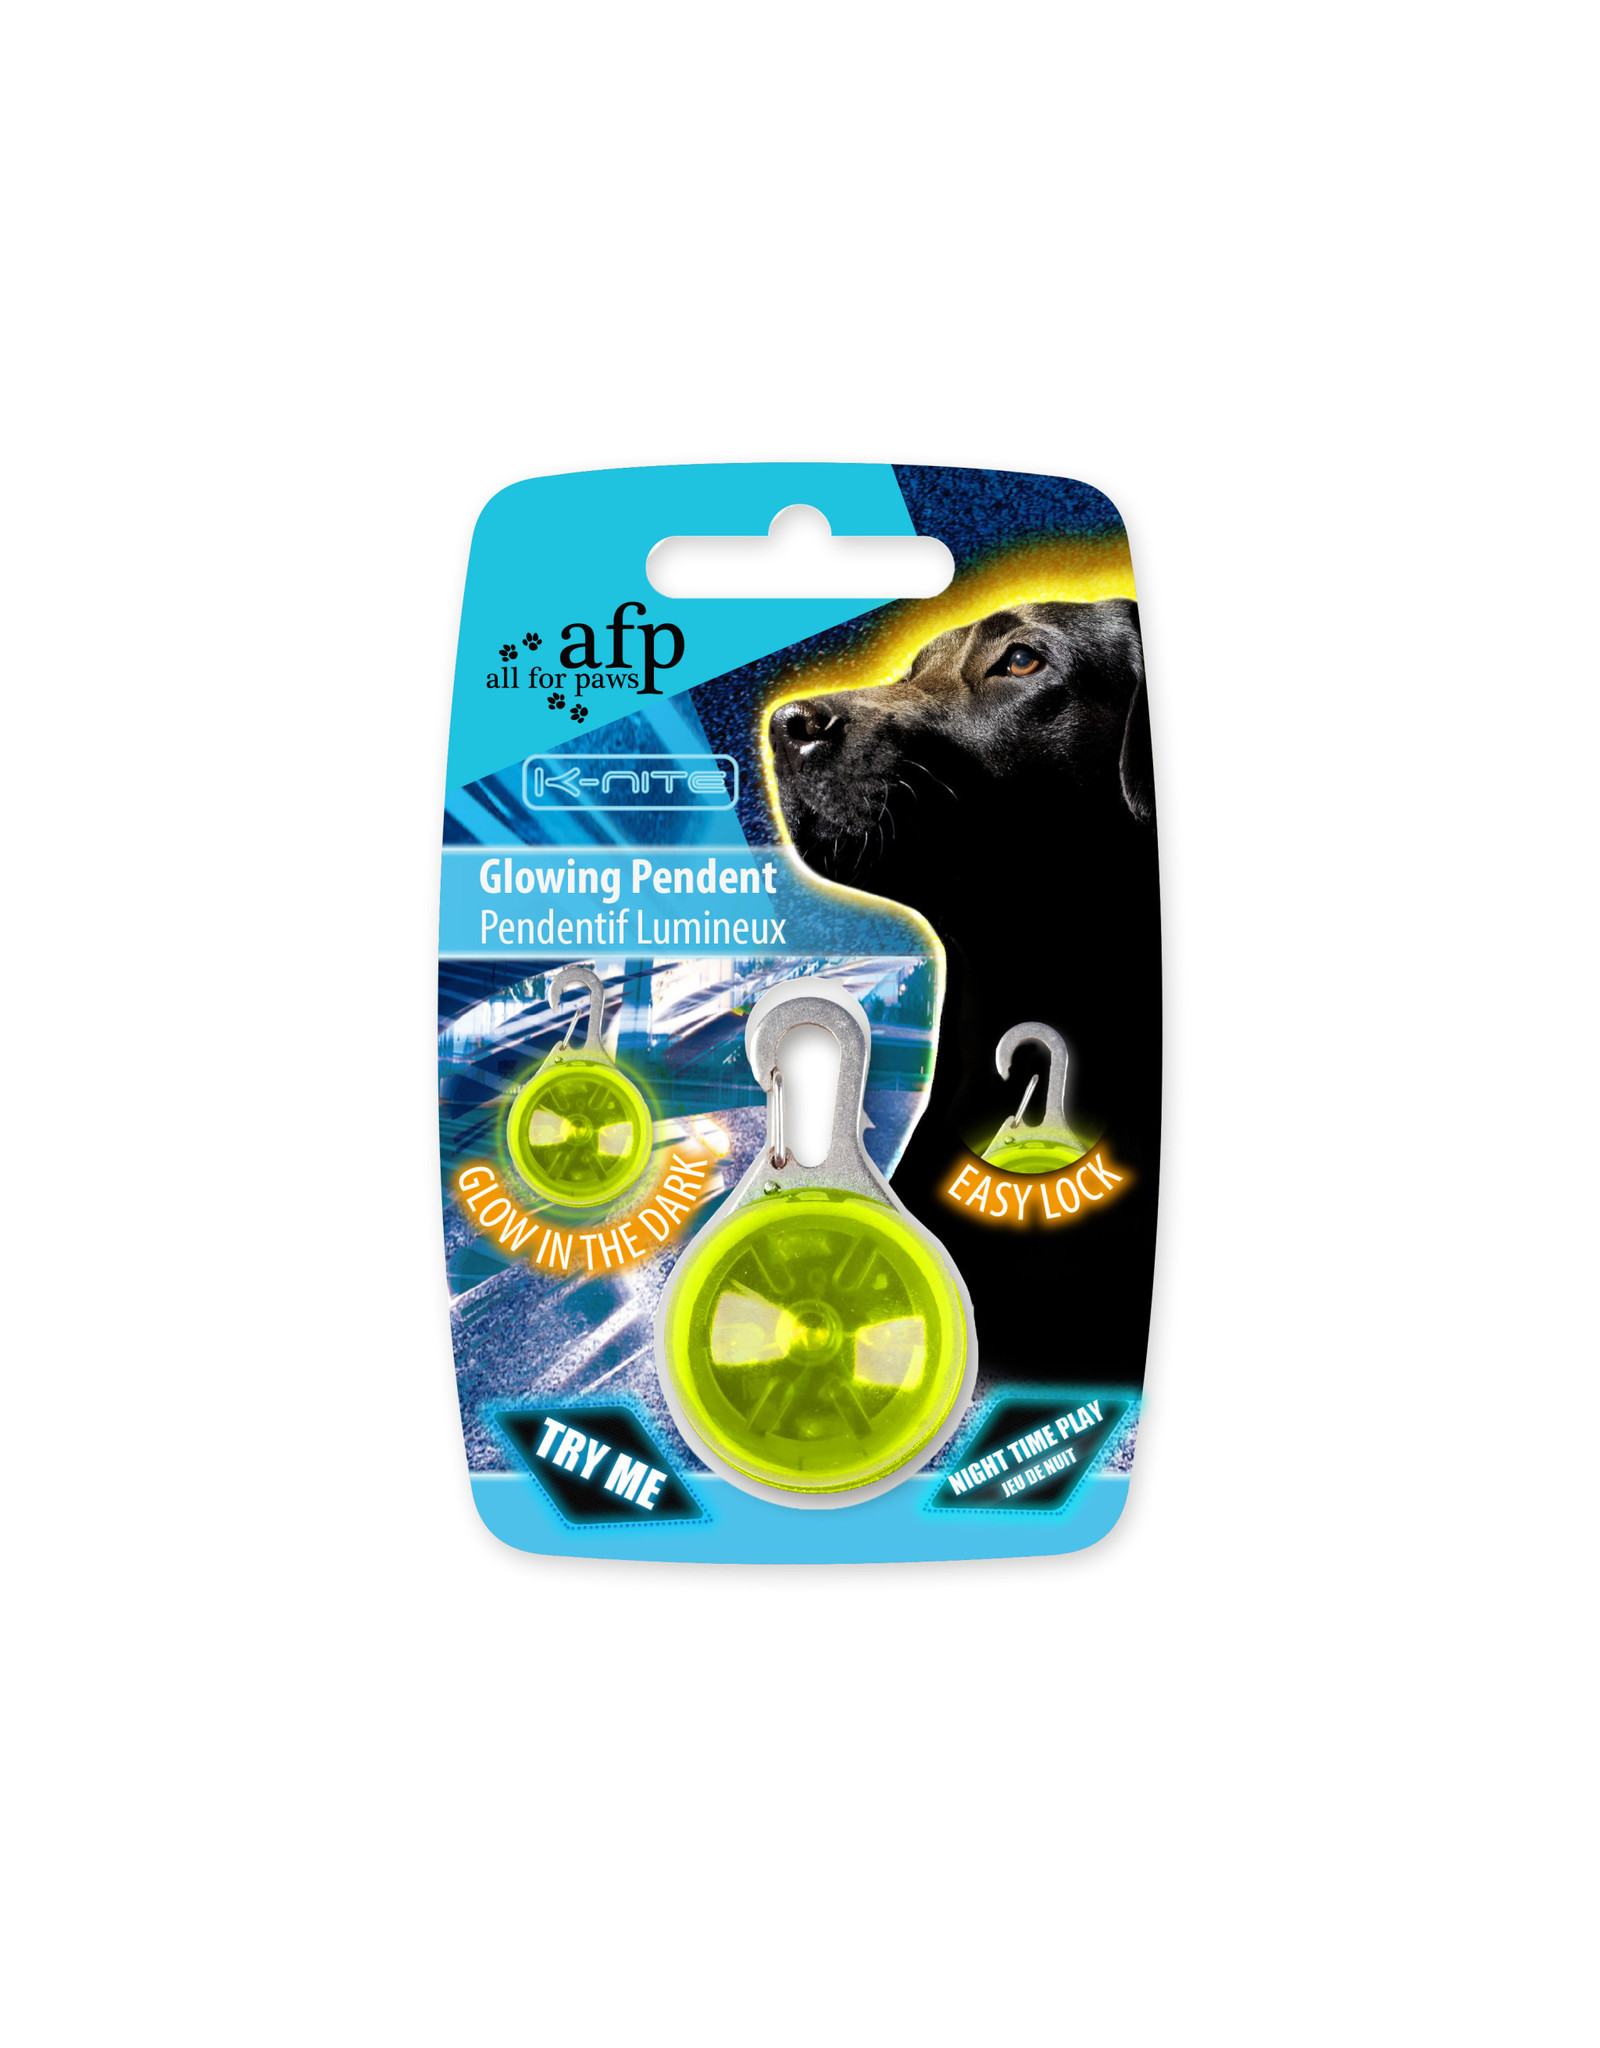 All for Paws K-Nite LED Glowing Pendent